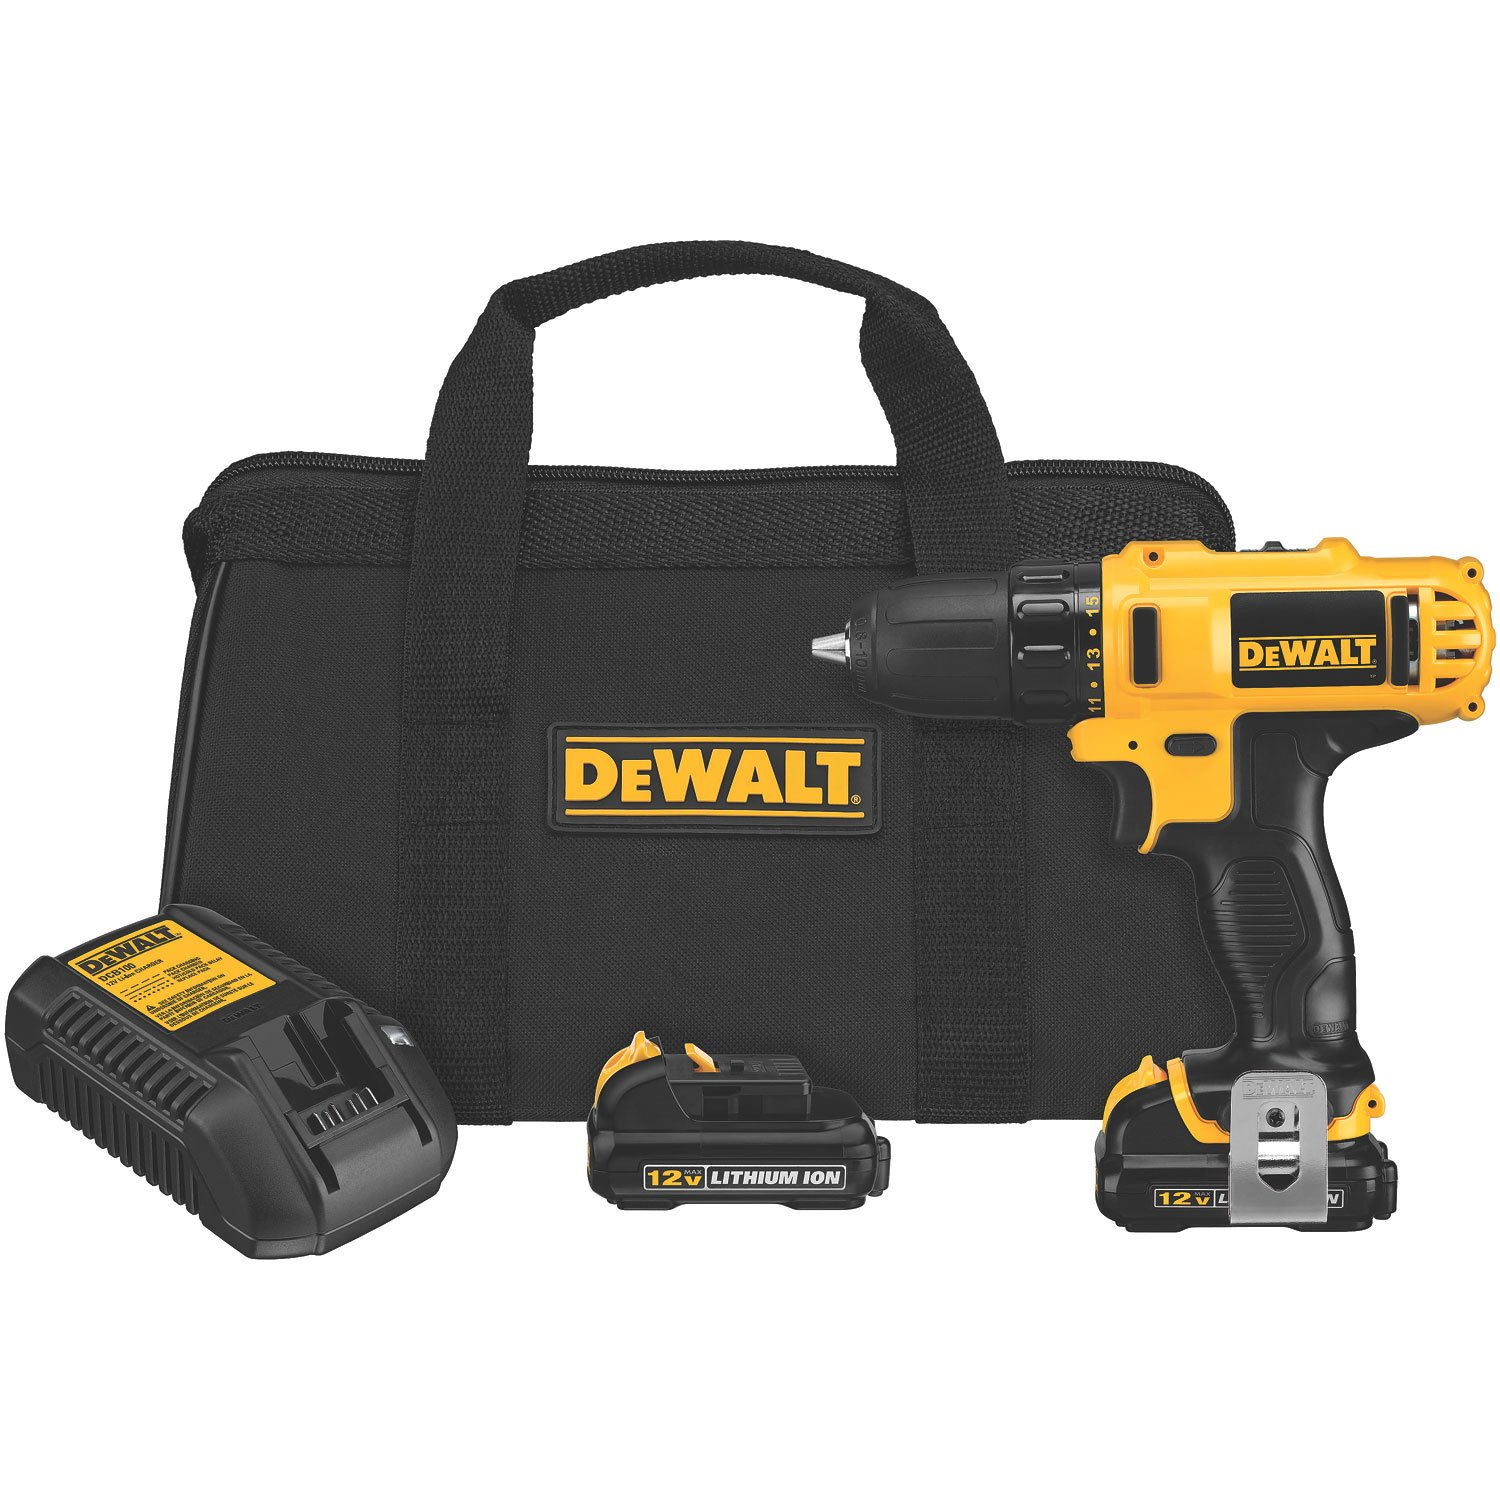 DEWALT Drill Driver Kit $60 off (Photo via Amazon)